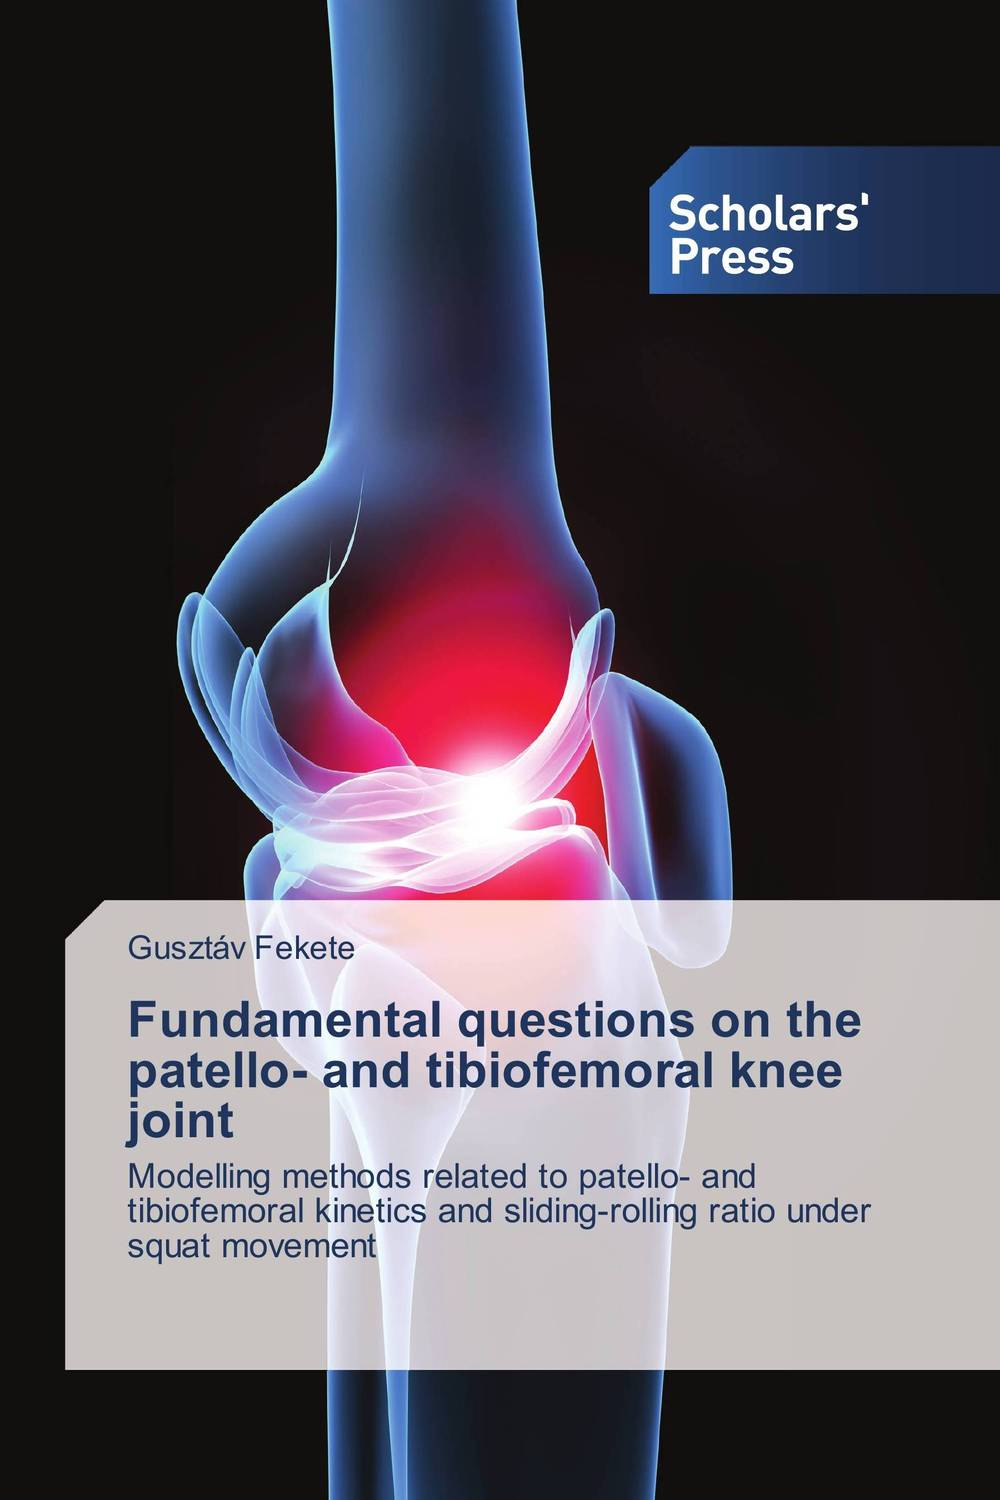 Fundamental questions on the patello- and tibiofemoral knee joint adjustable knee joint meniscus knee rehabilitation equipment maintenance men and women with a fixed fractures knee ligament reco